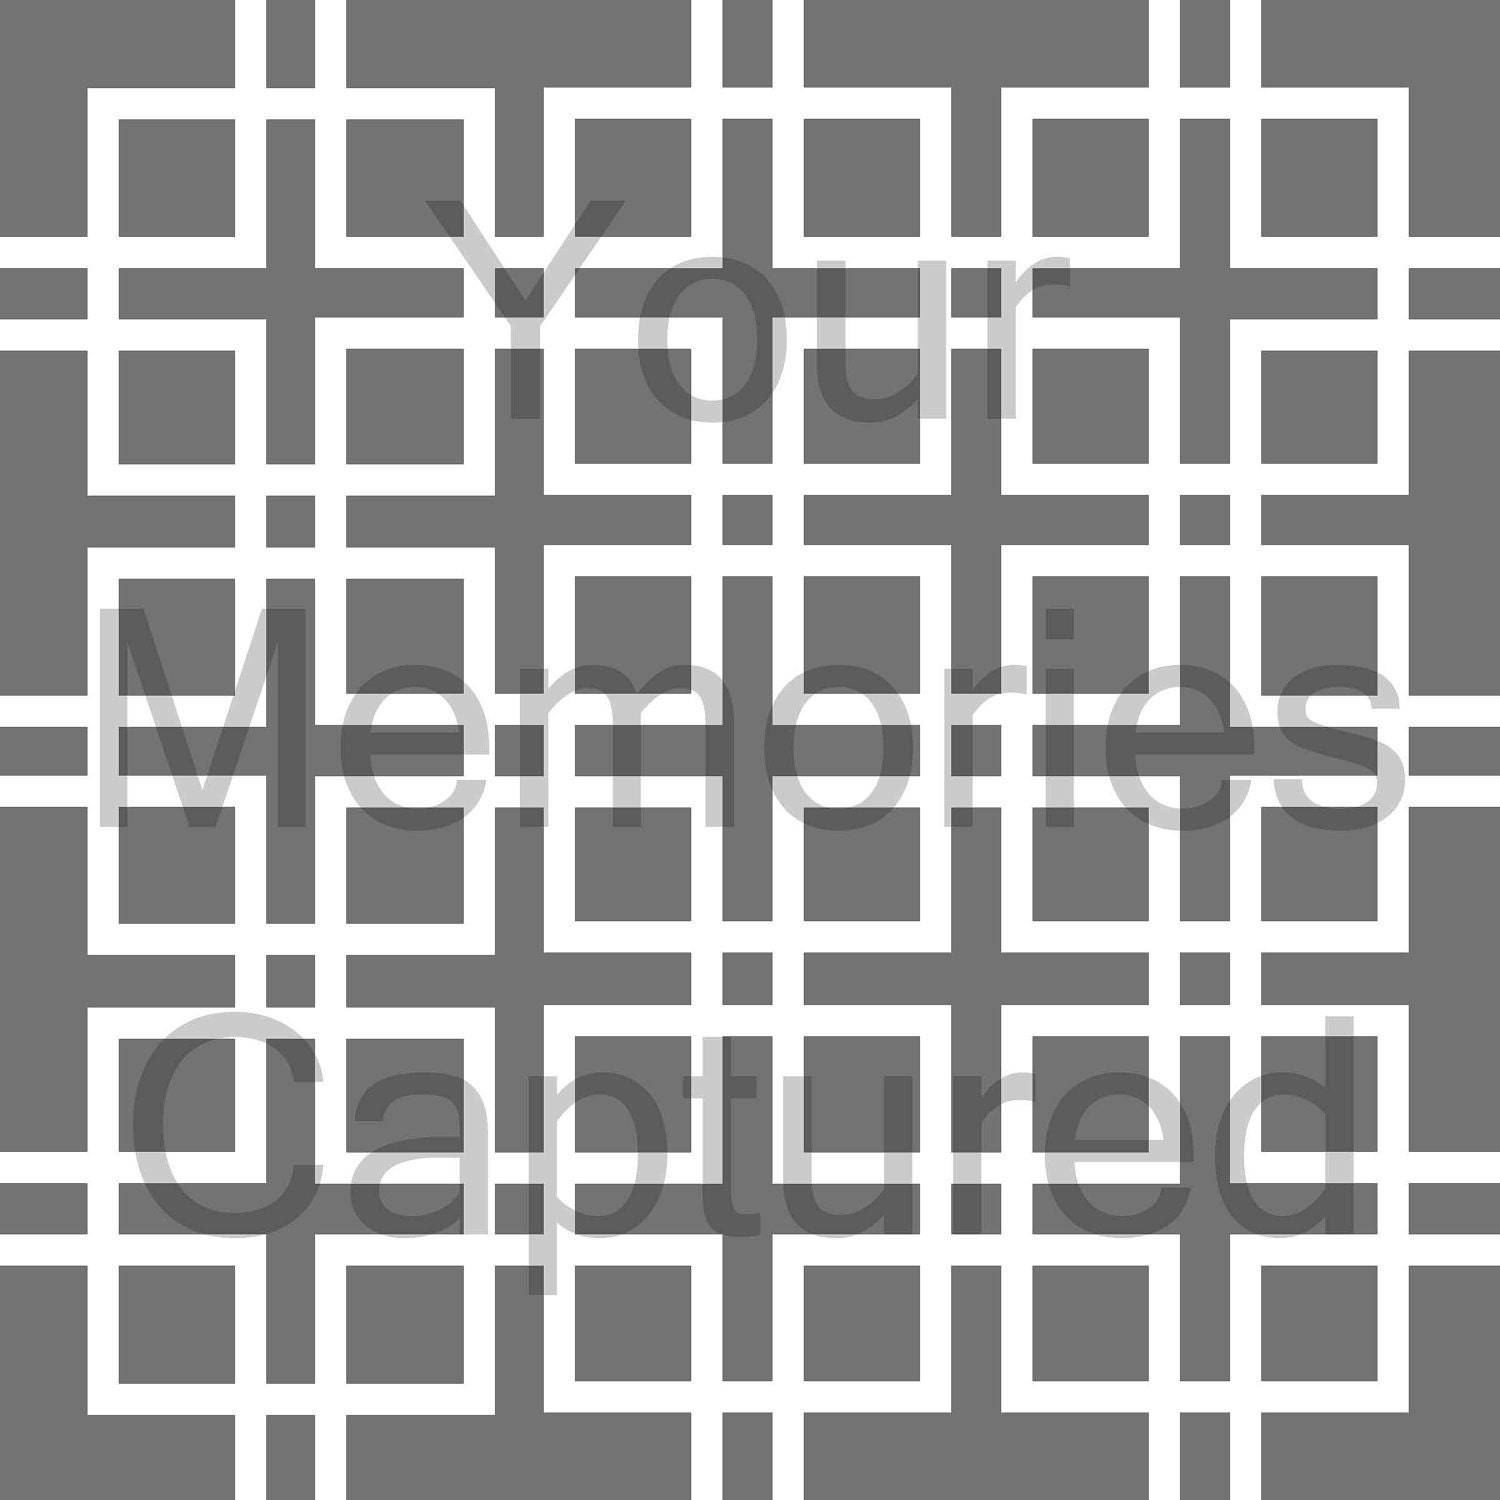 Lattice Linked Squares Reusable Stencil - for fabric, wood, paper, canvas, walls - 8x8